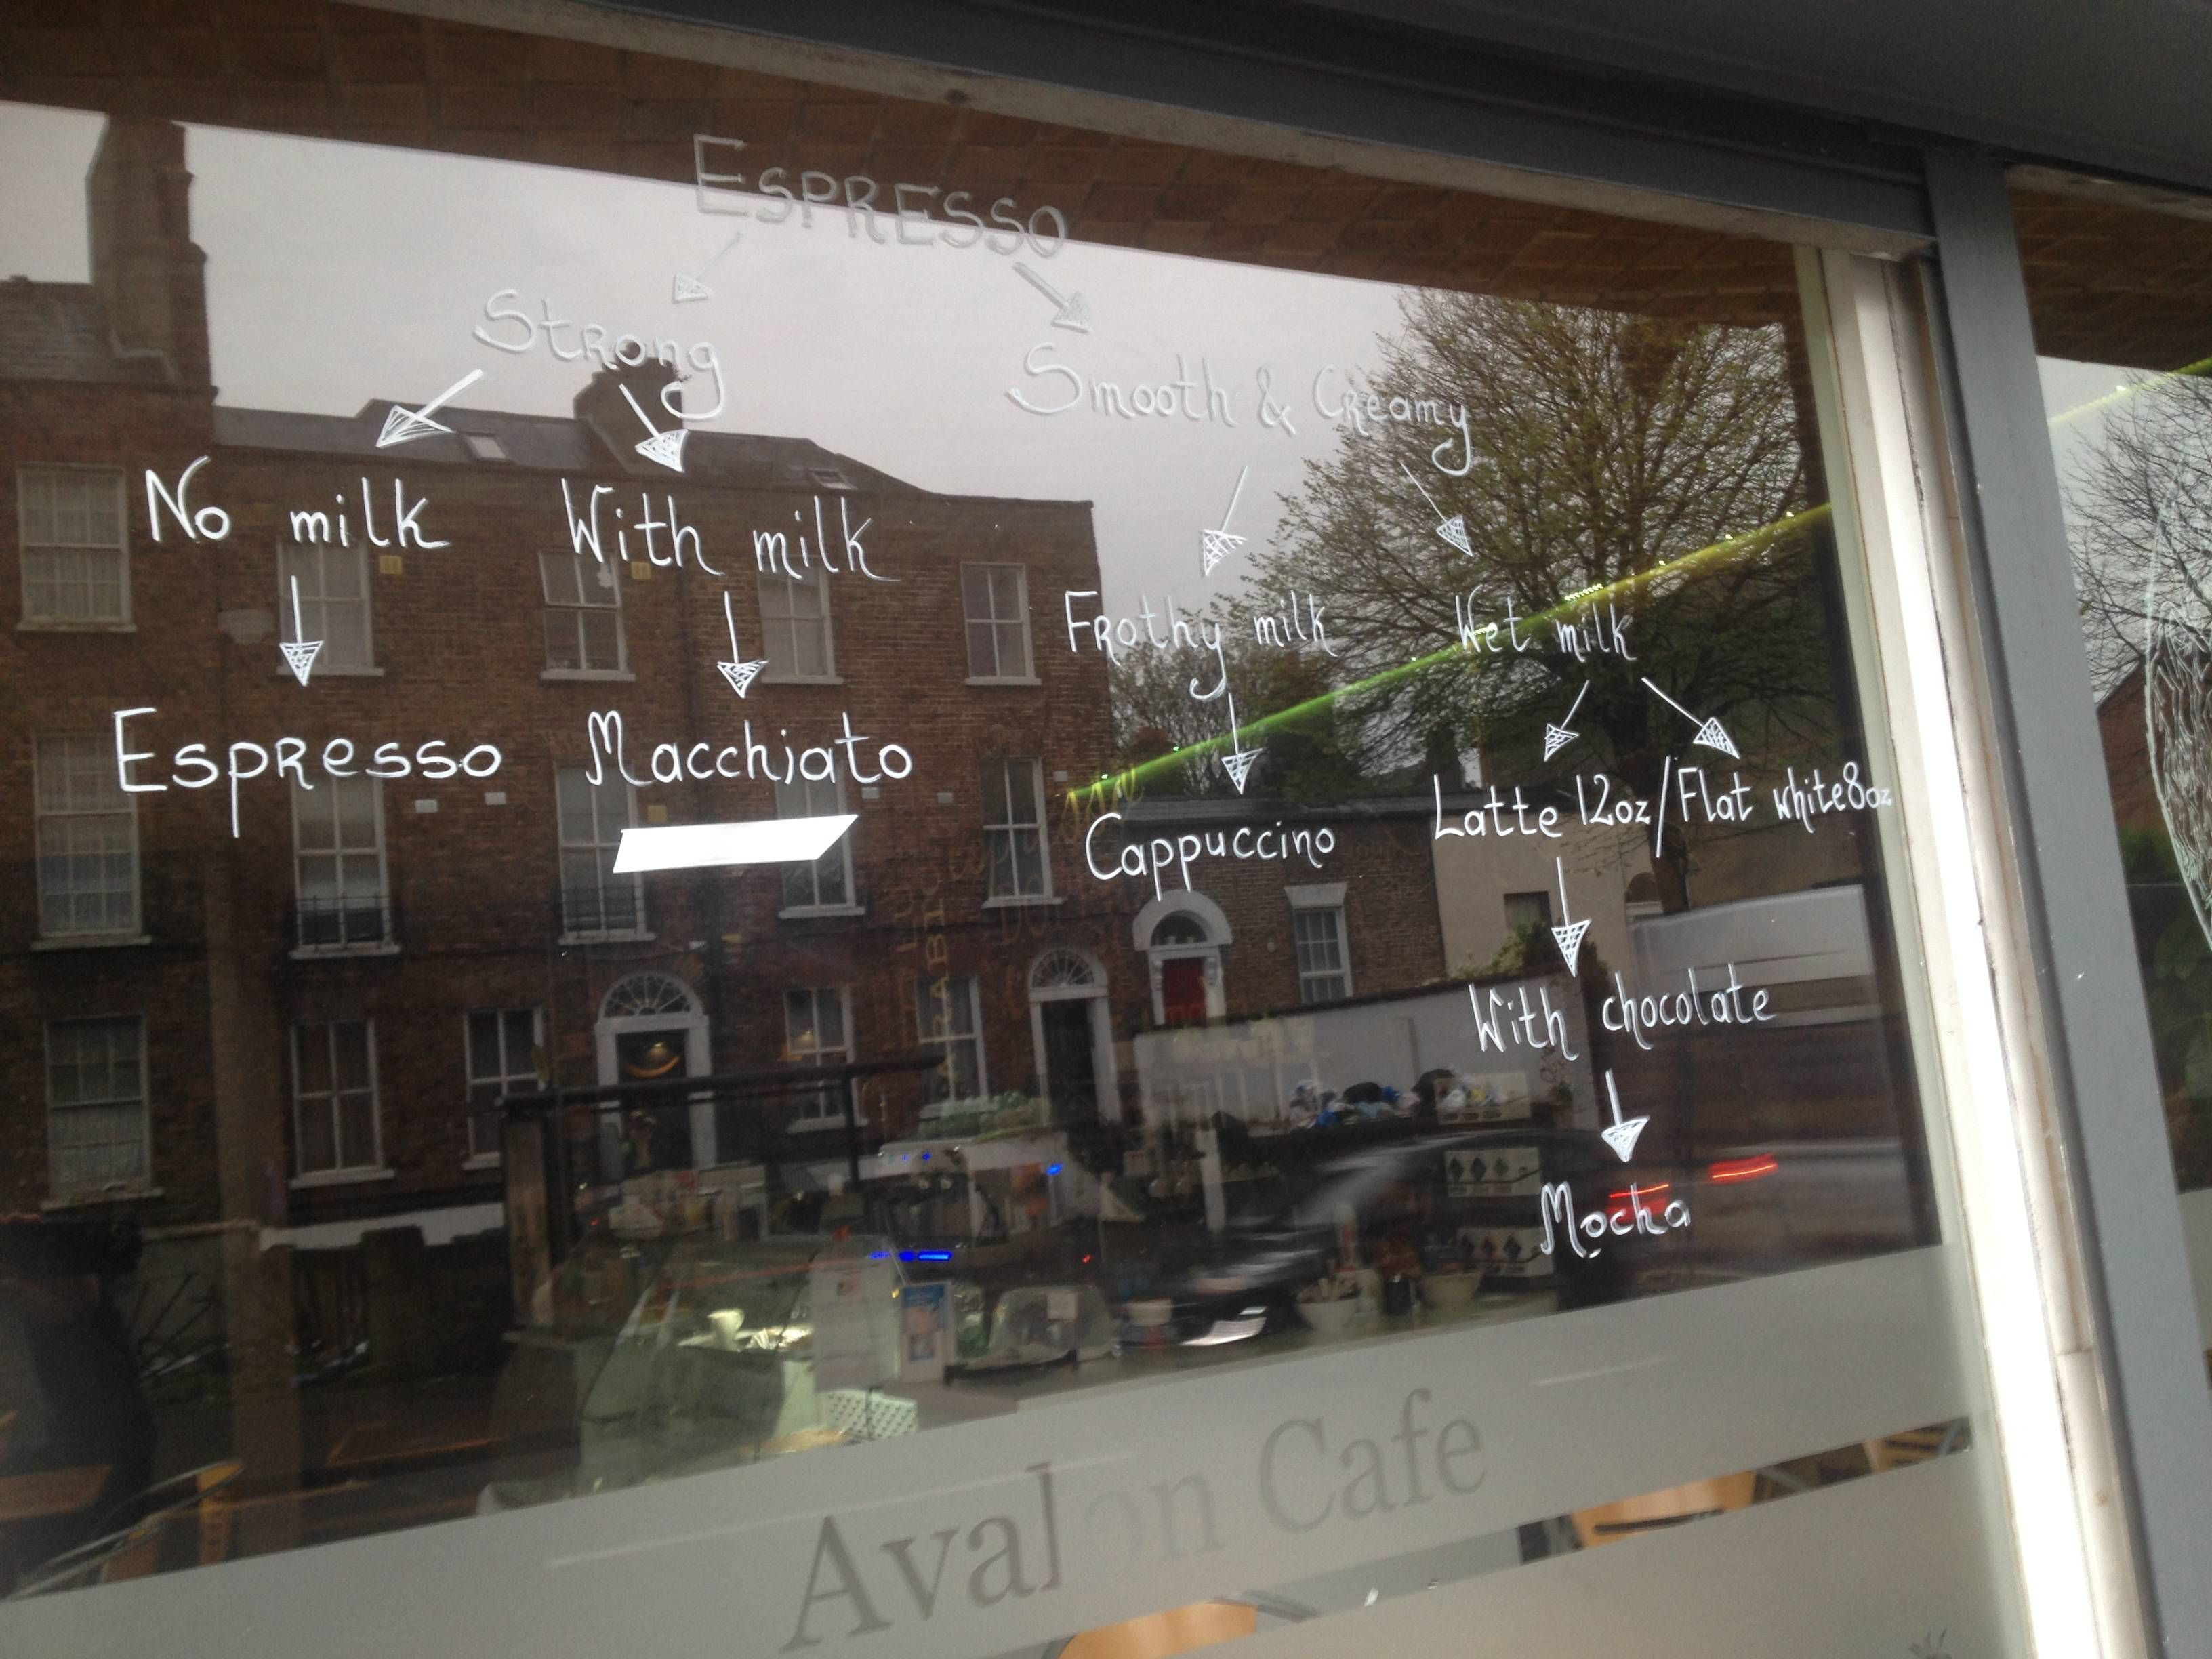 This coffee shop has a handy guide to coffee drawn on their window